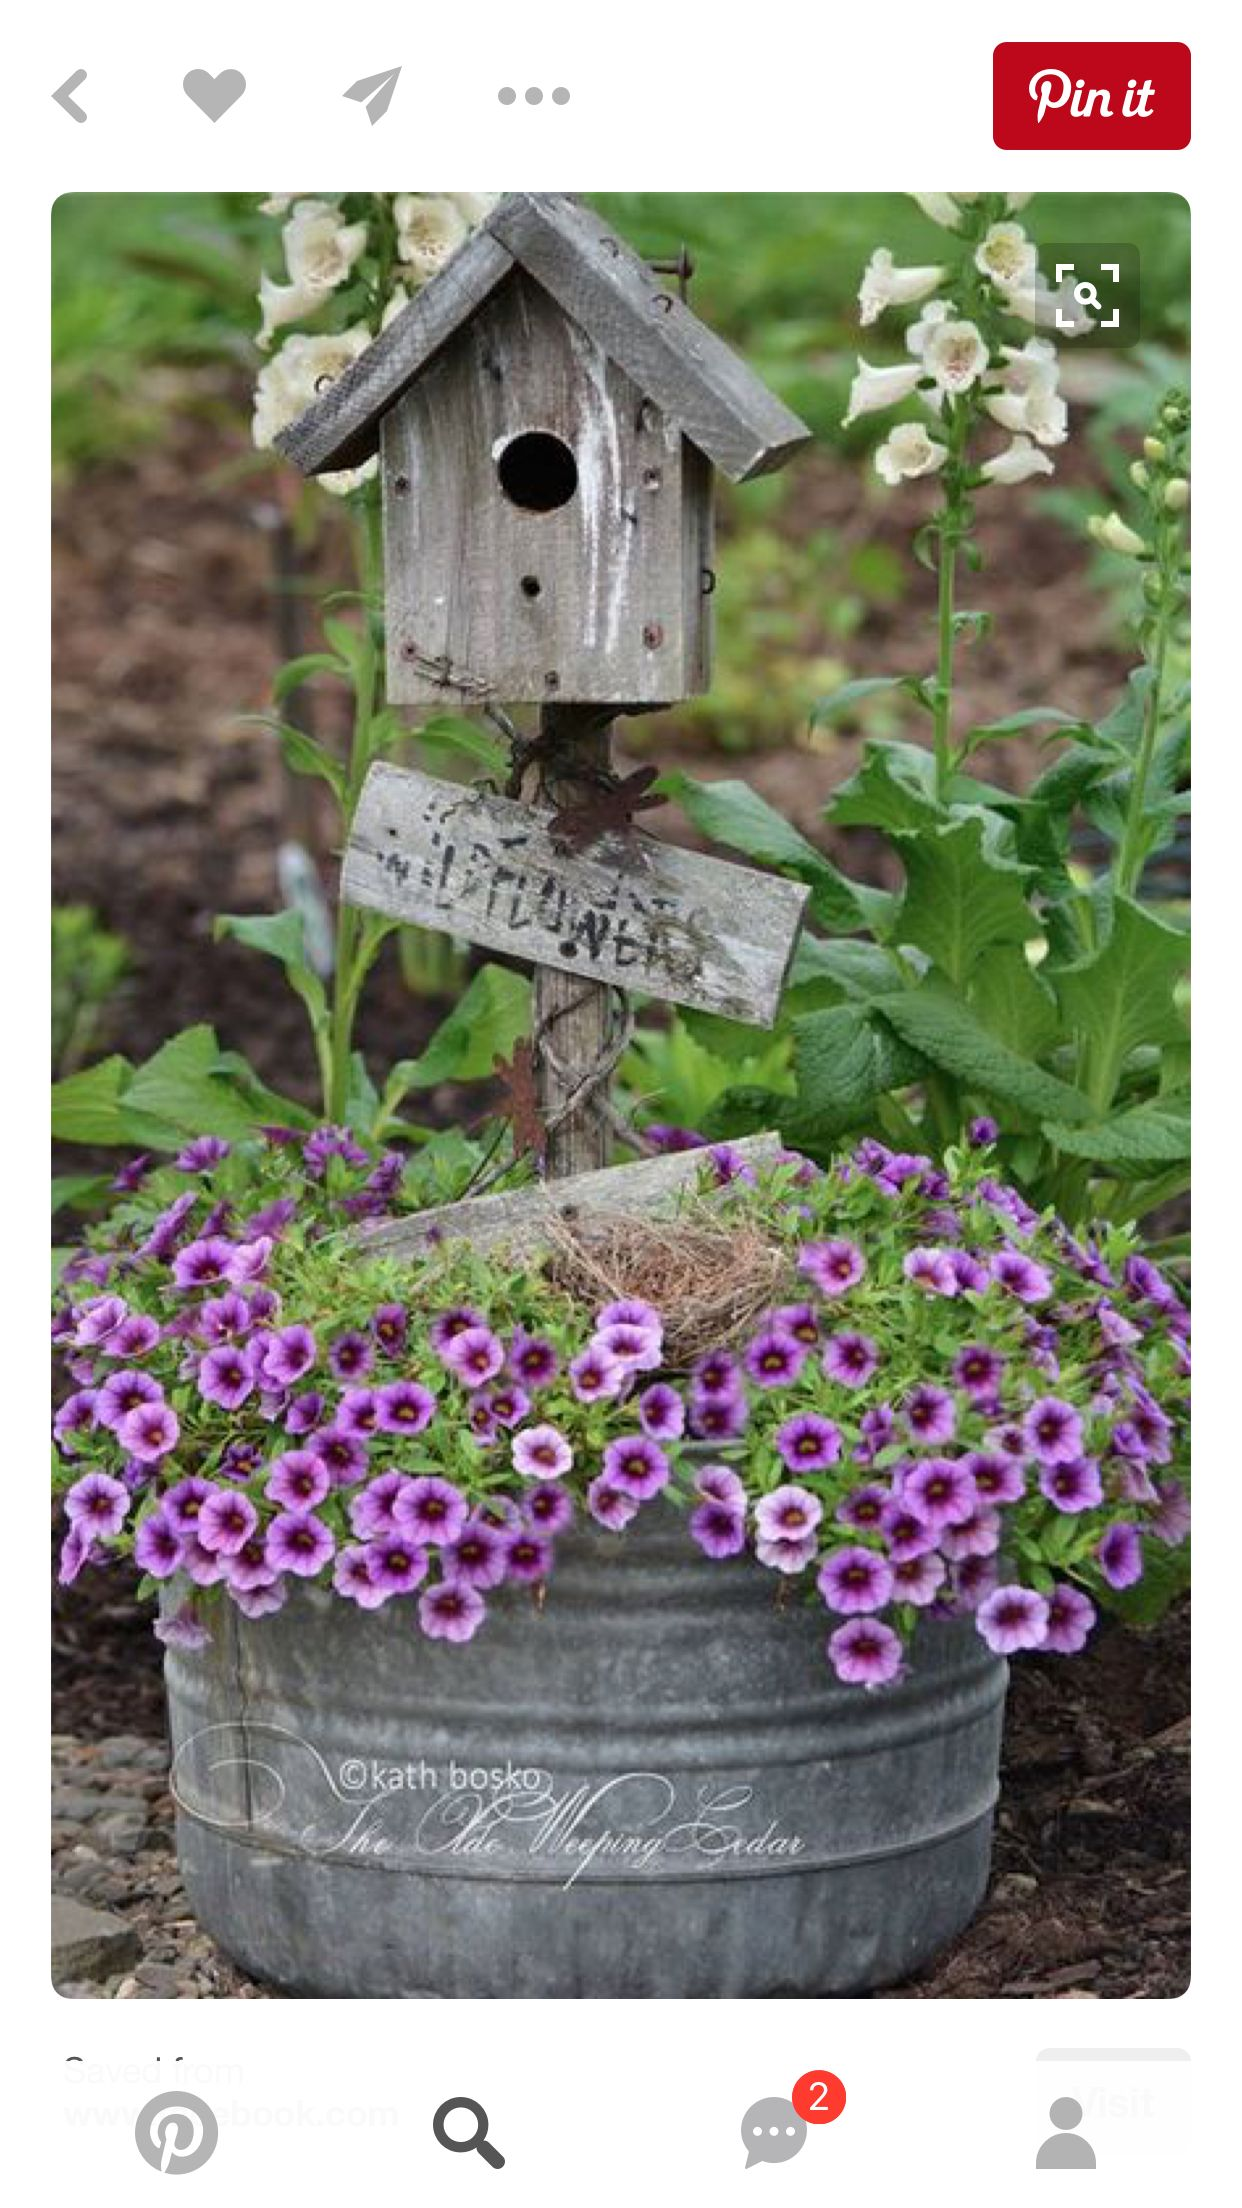 Pin by Barbara Fuches on Gardens and Flowers | Pinterest | Metal tub ...